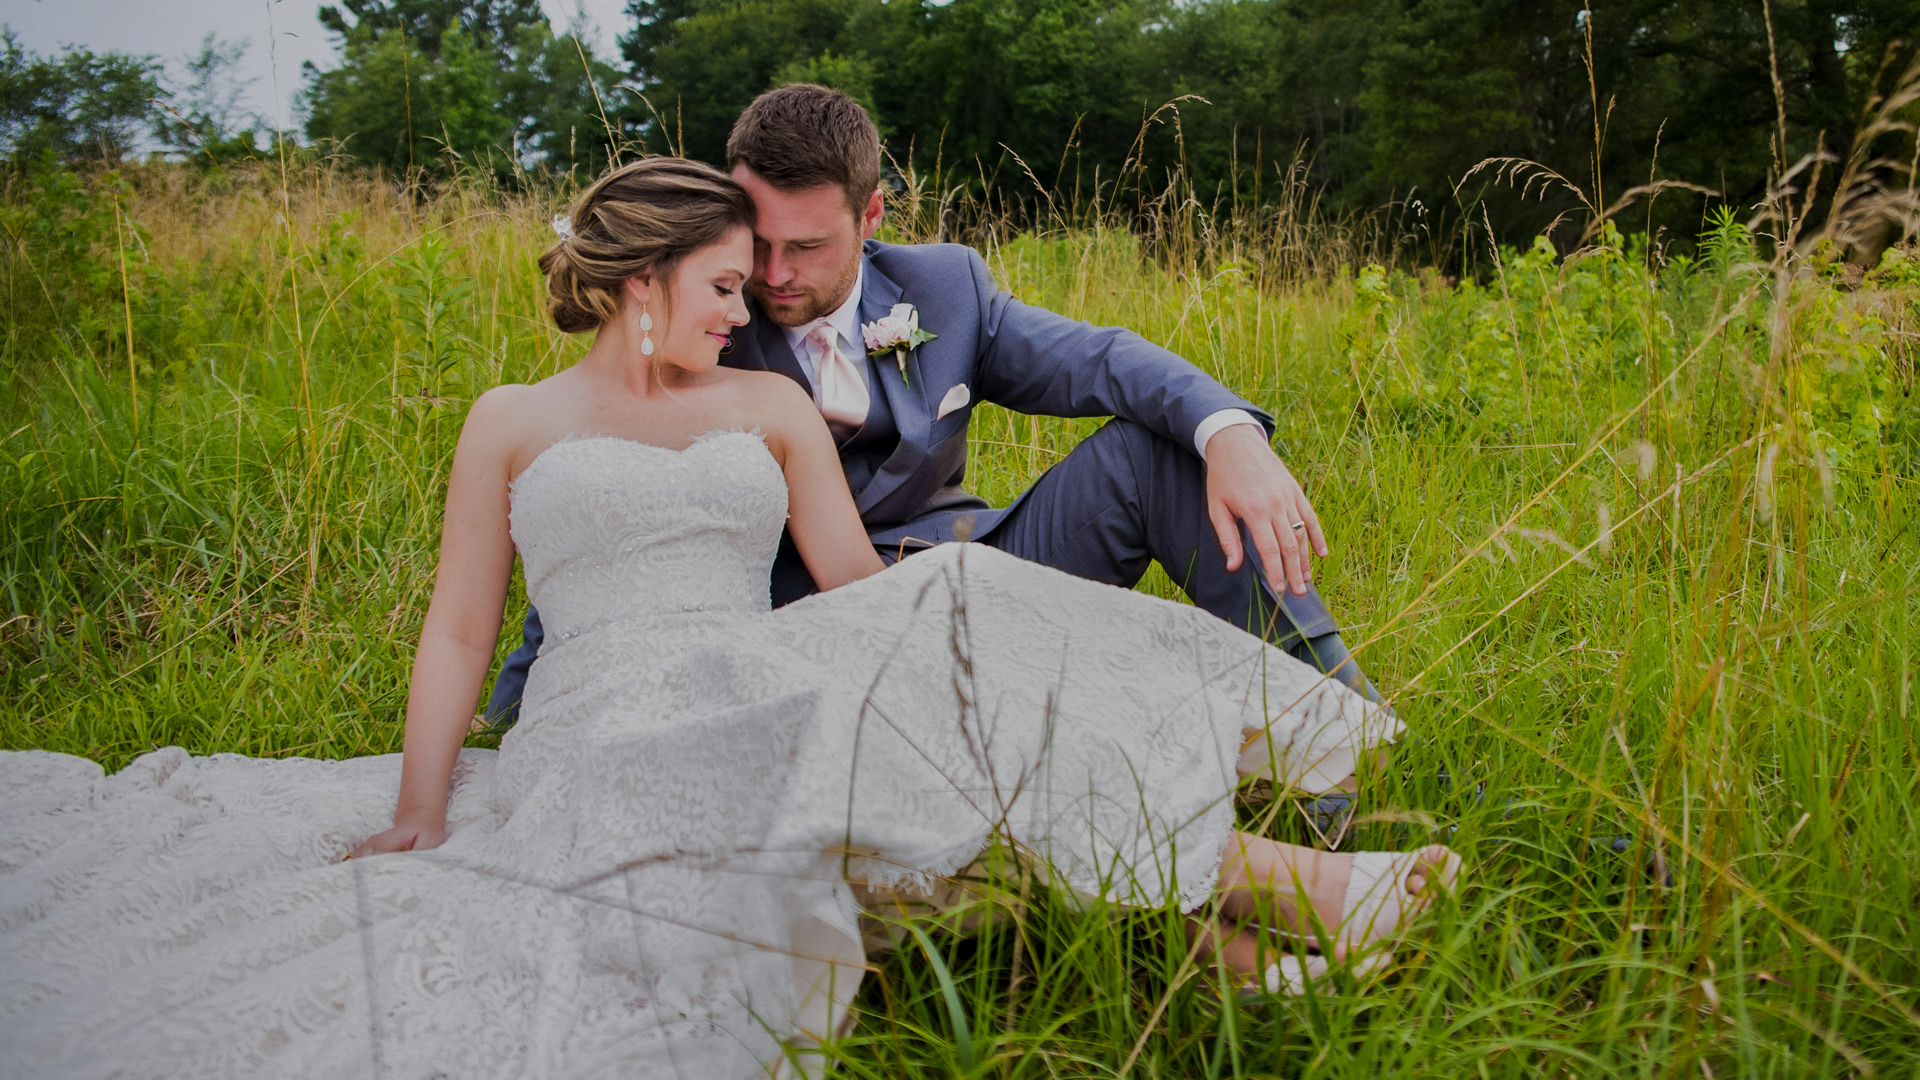 Check portfolios, pricing and availability for wedding photographers in Raleigh